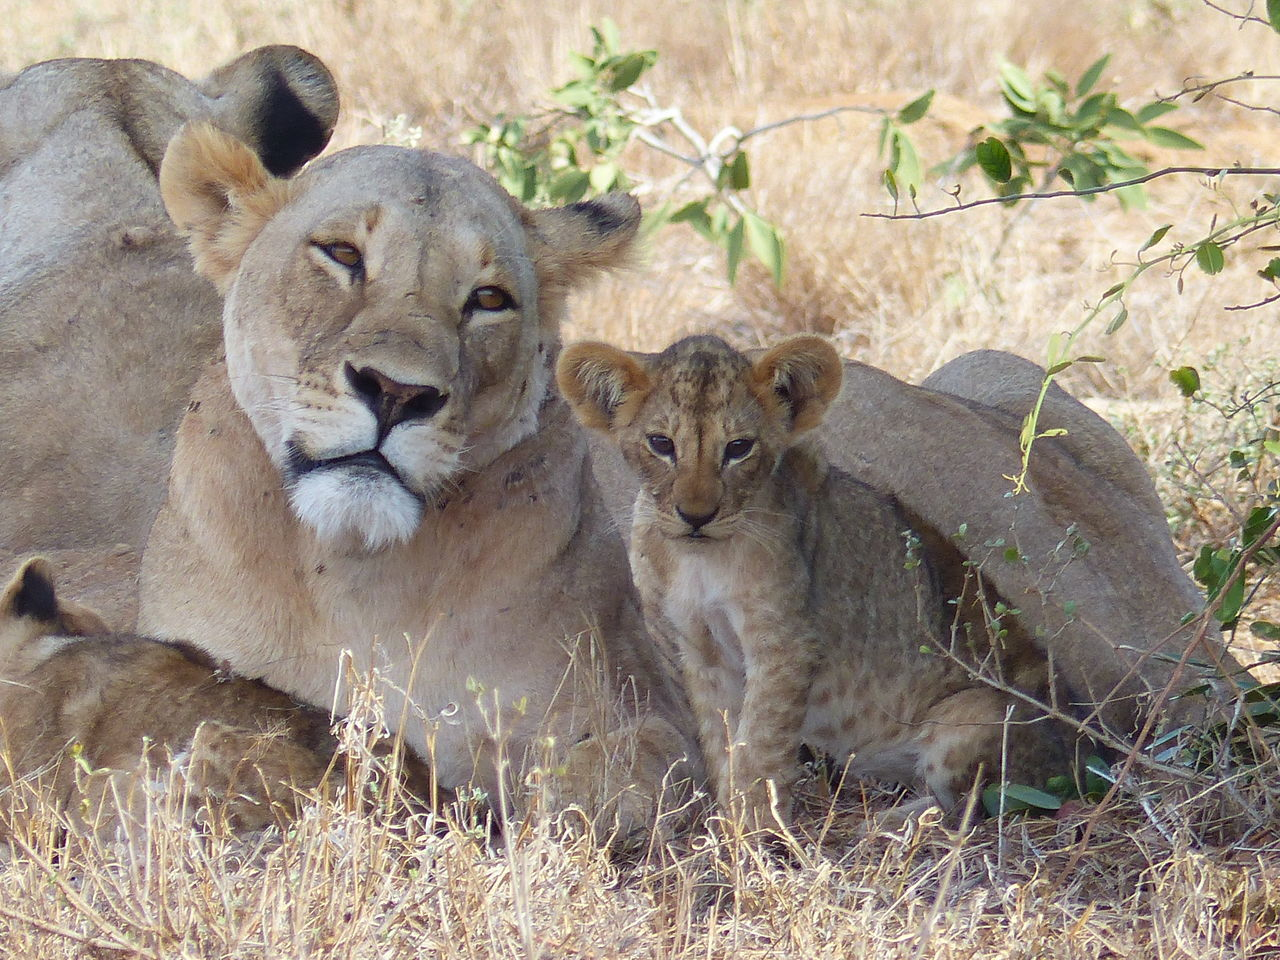 animals in the wild, animal wildlife, lion - feline, lioness, lion cub, animal, animal themes, outdoors, young animal, no people, day, mammal, female animal, animal family, safari animals, nature, portrait, togetherness, grass, beauty in nature